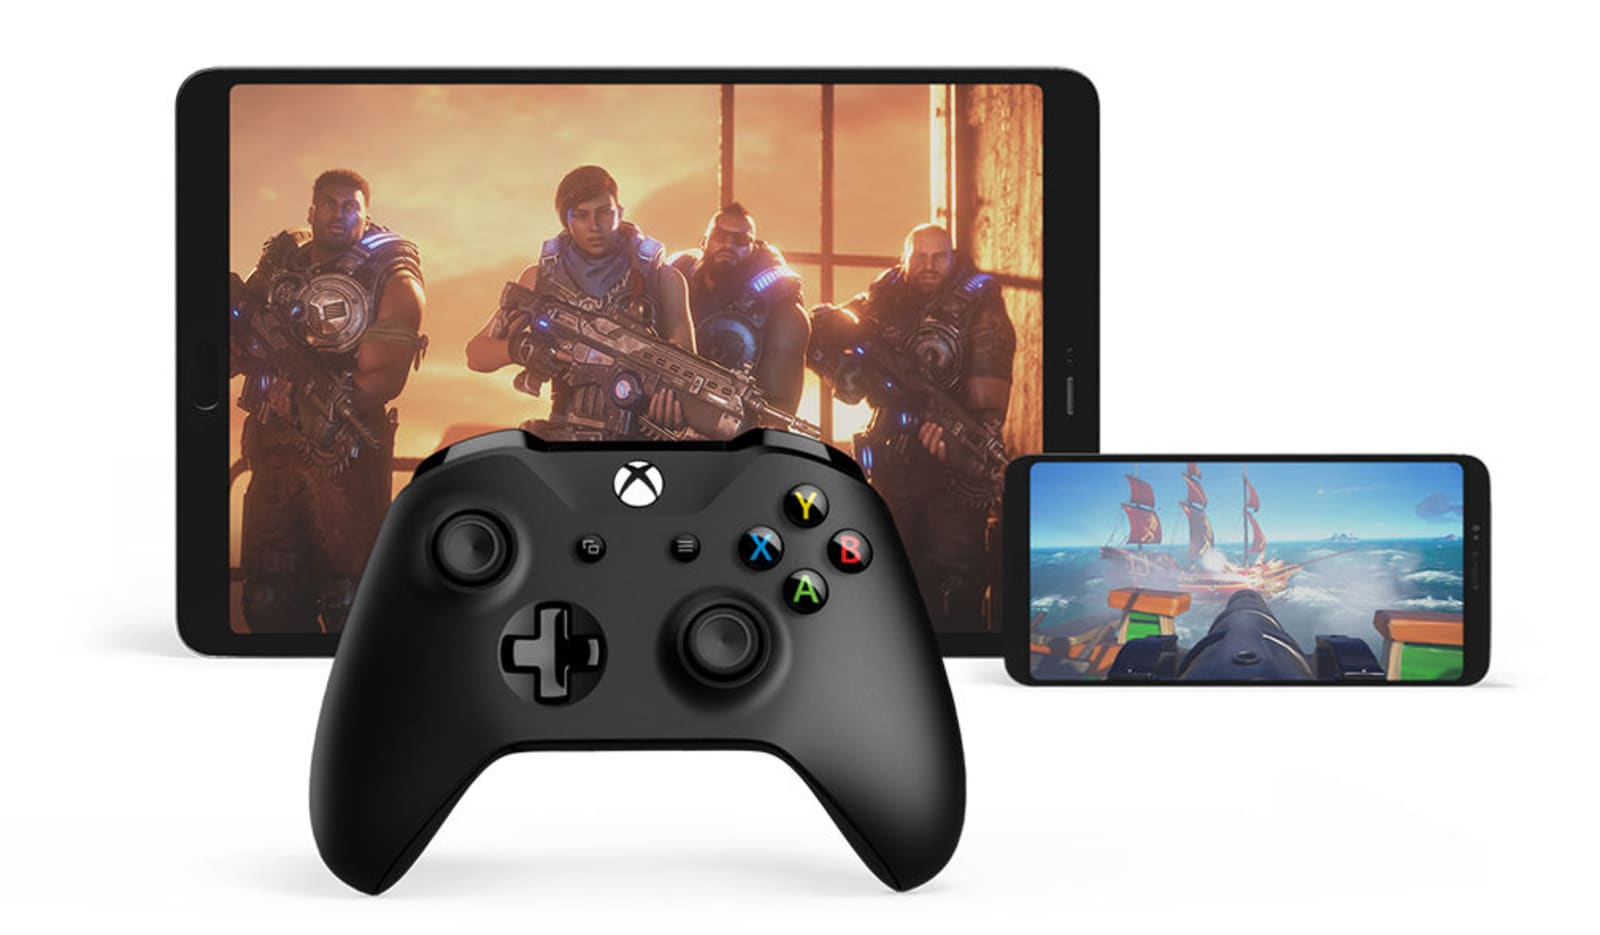 Microsoft adds over 50 games to xCloud preview, details plans for 2020